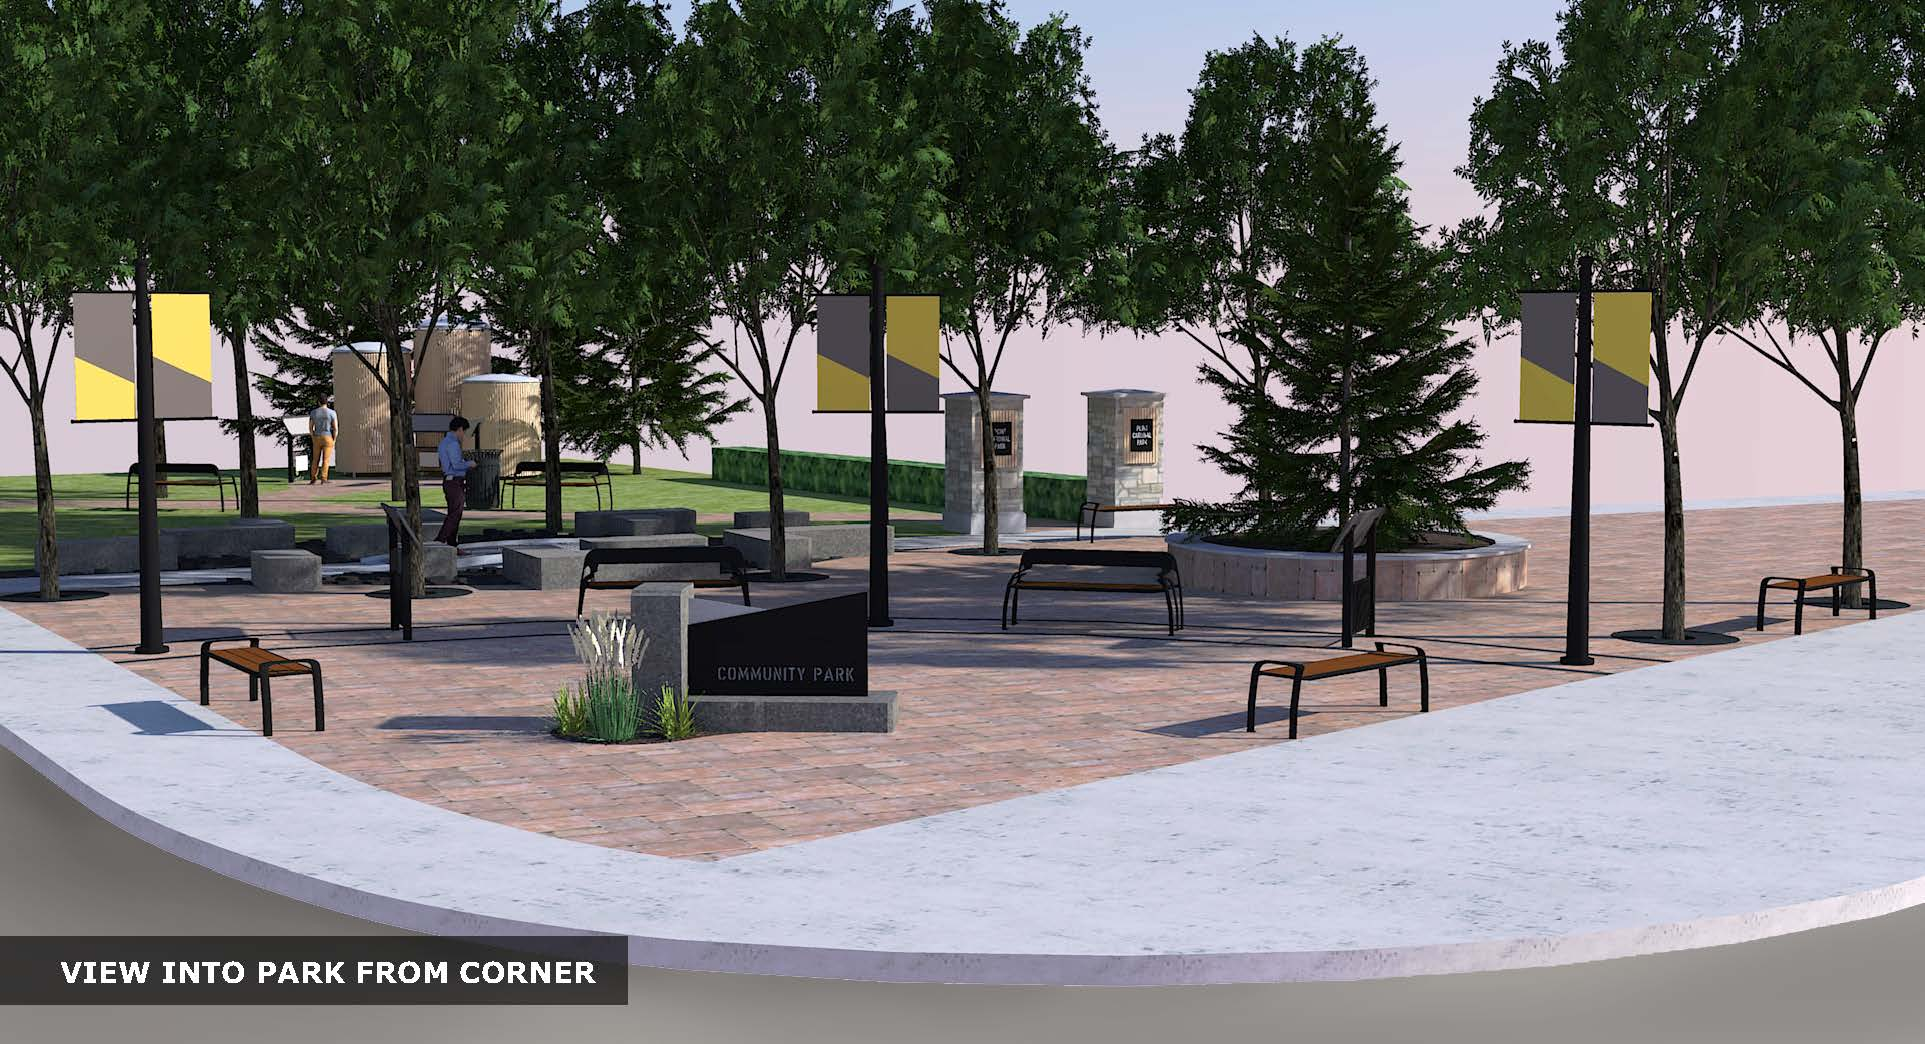 Community Park Entrance_Riverview Design Solutions_Landscape Design_Architectural Design_Concept.jpg